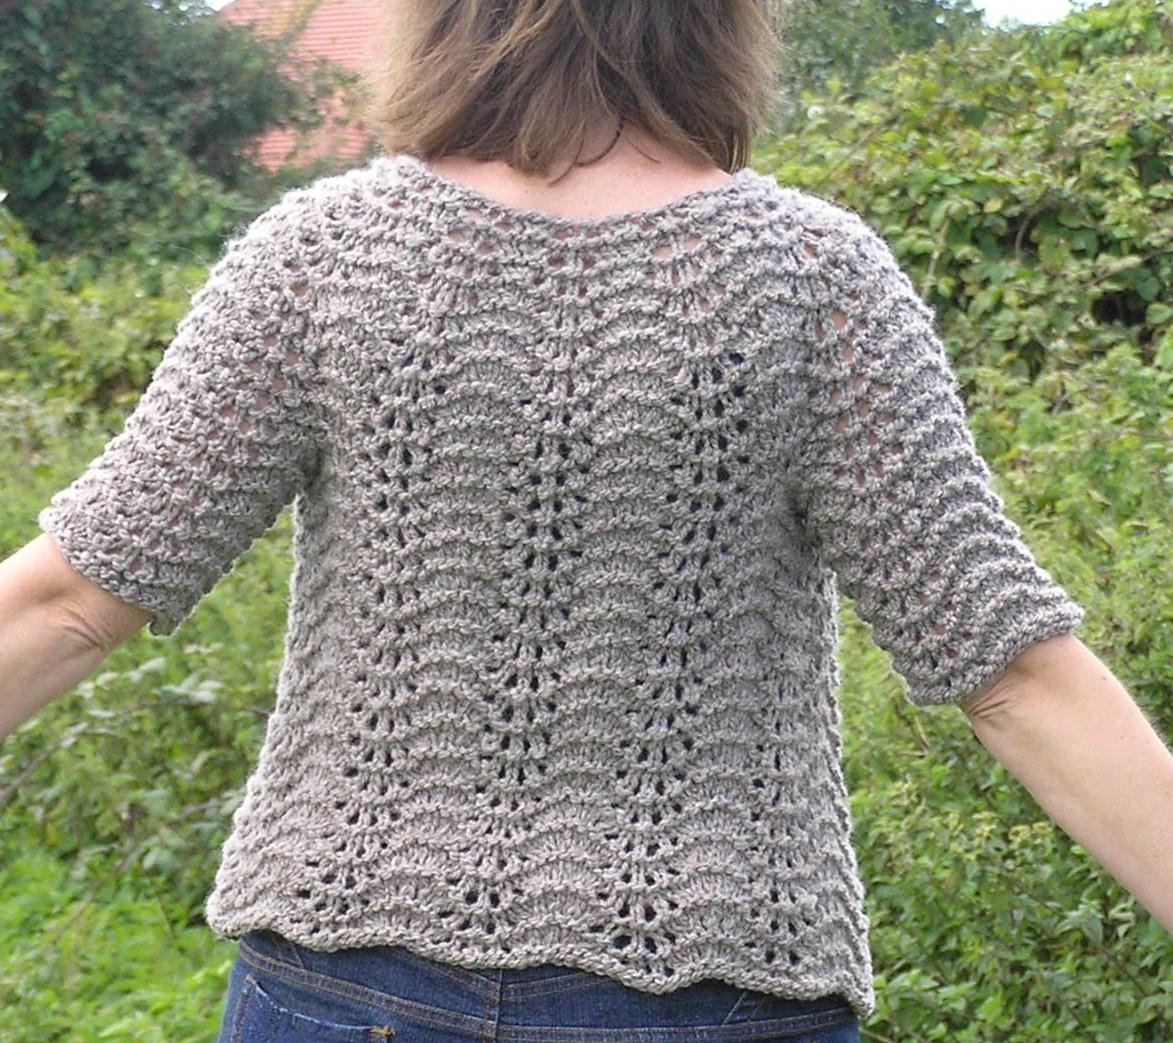 Feather Knitting Pattern : Ysolda Teague Spinstar Creations